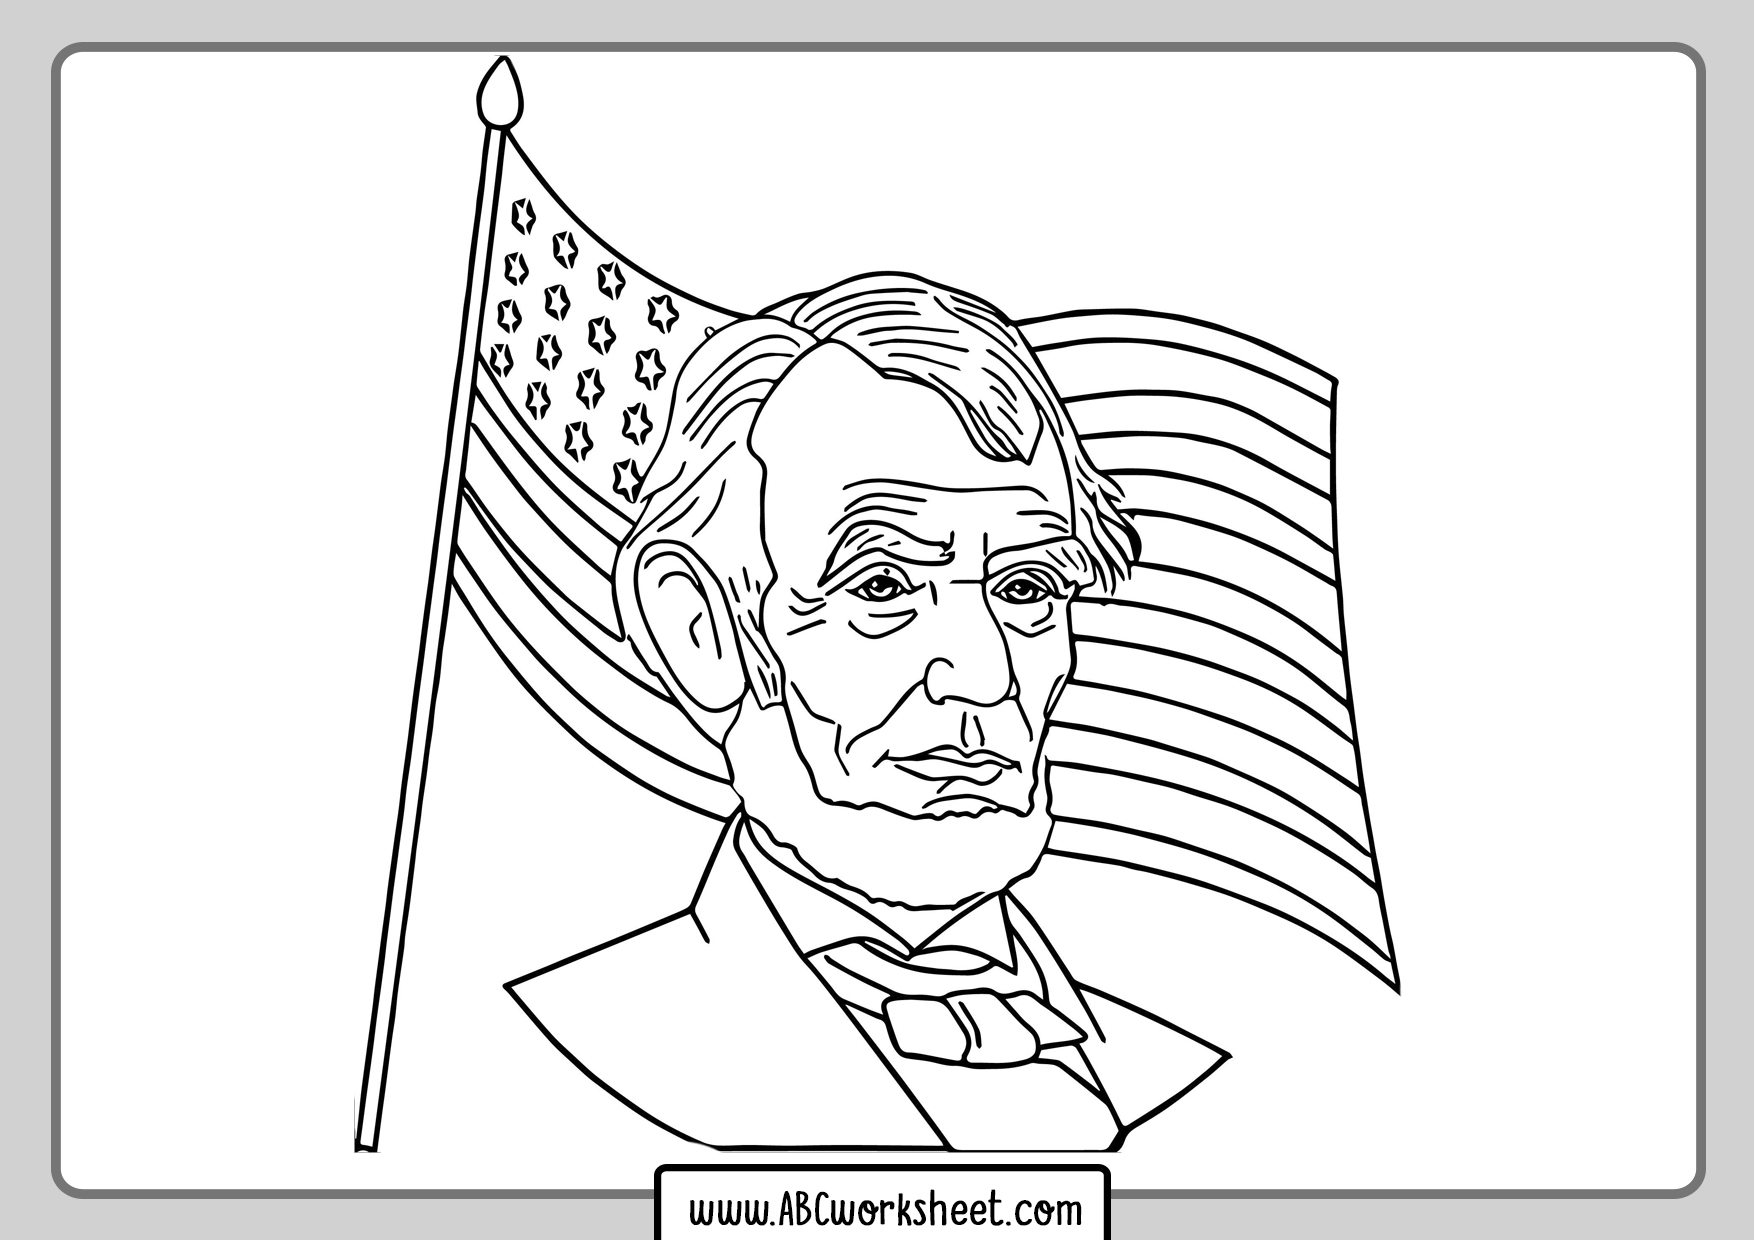 Abraham Lincoln Coloring Pages - Best Coloring Pages For Kids | 1240x1754